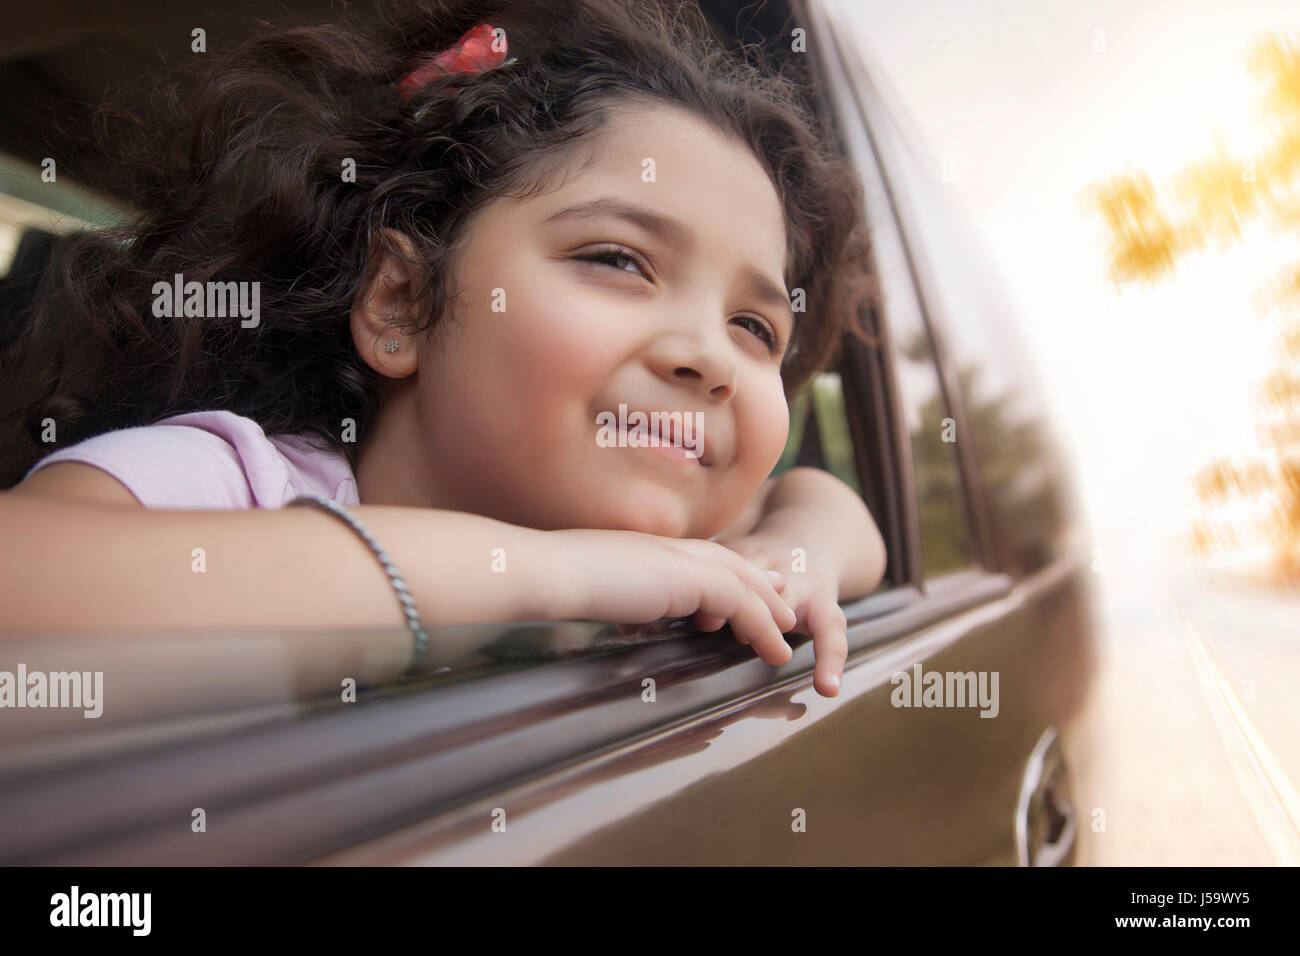 Girl looking out car window - Stock Image